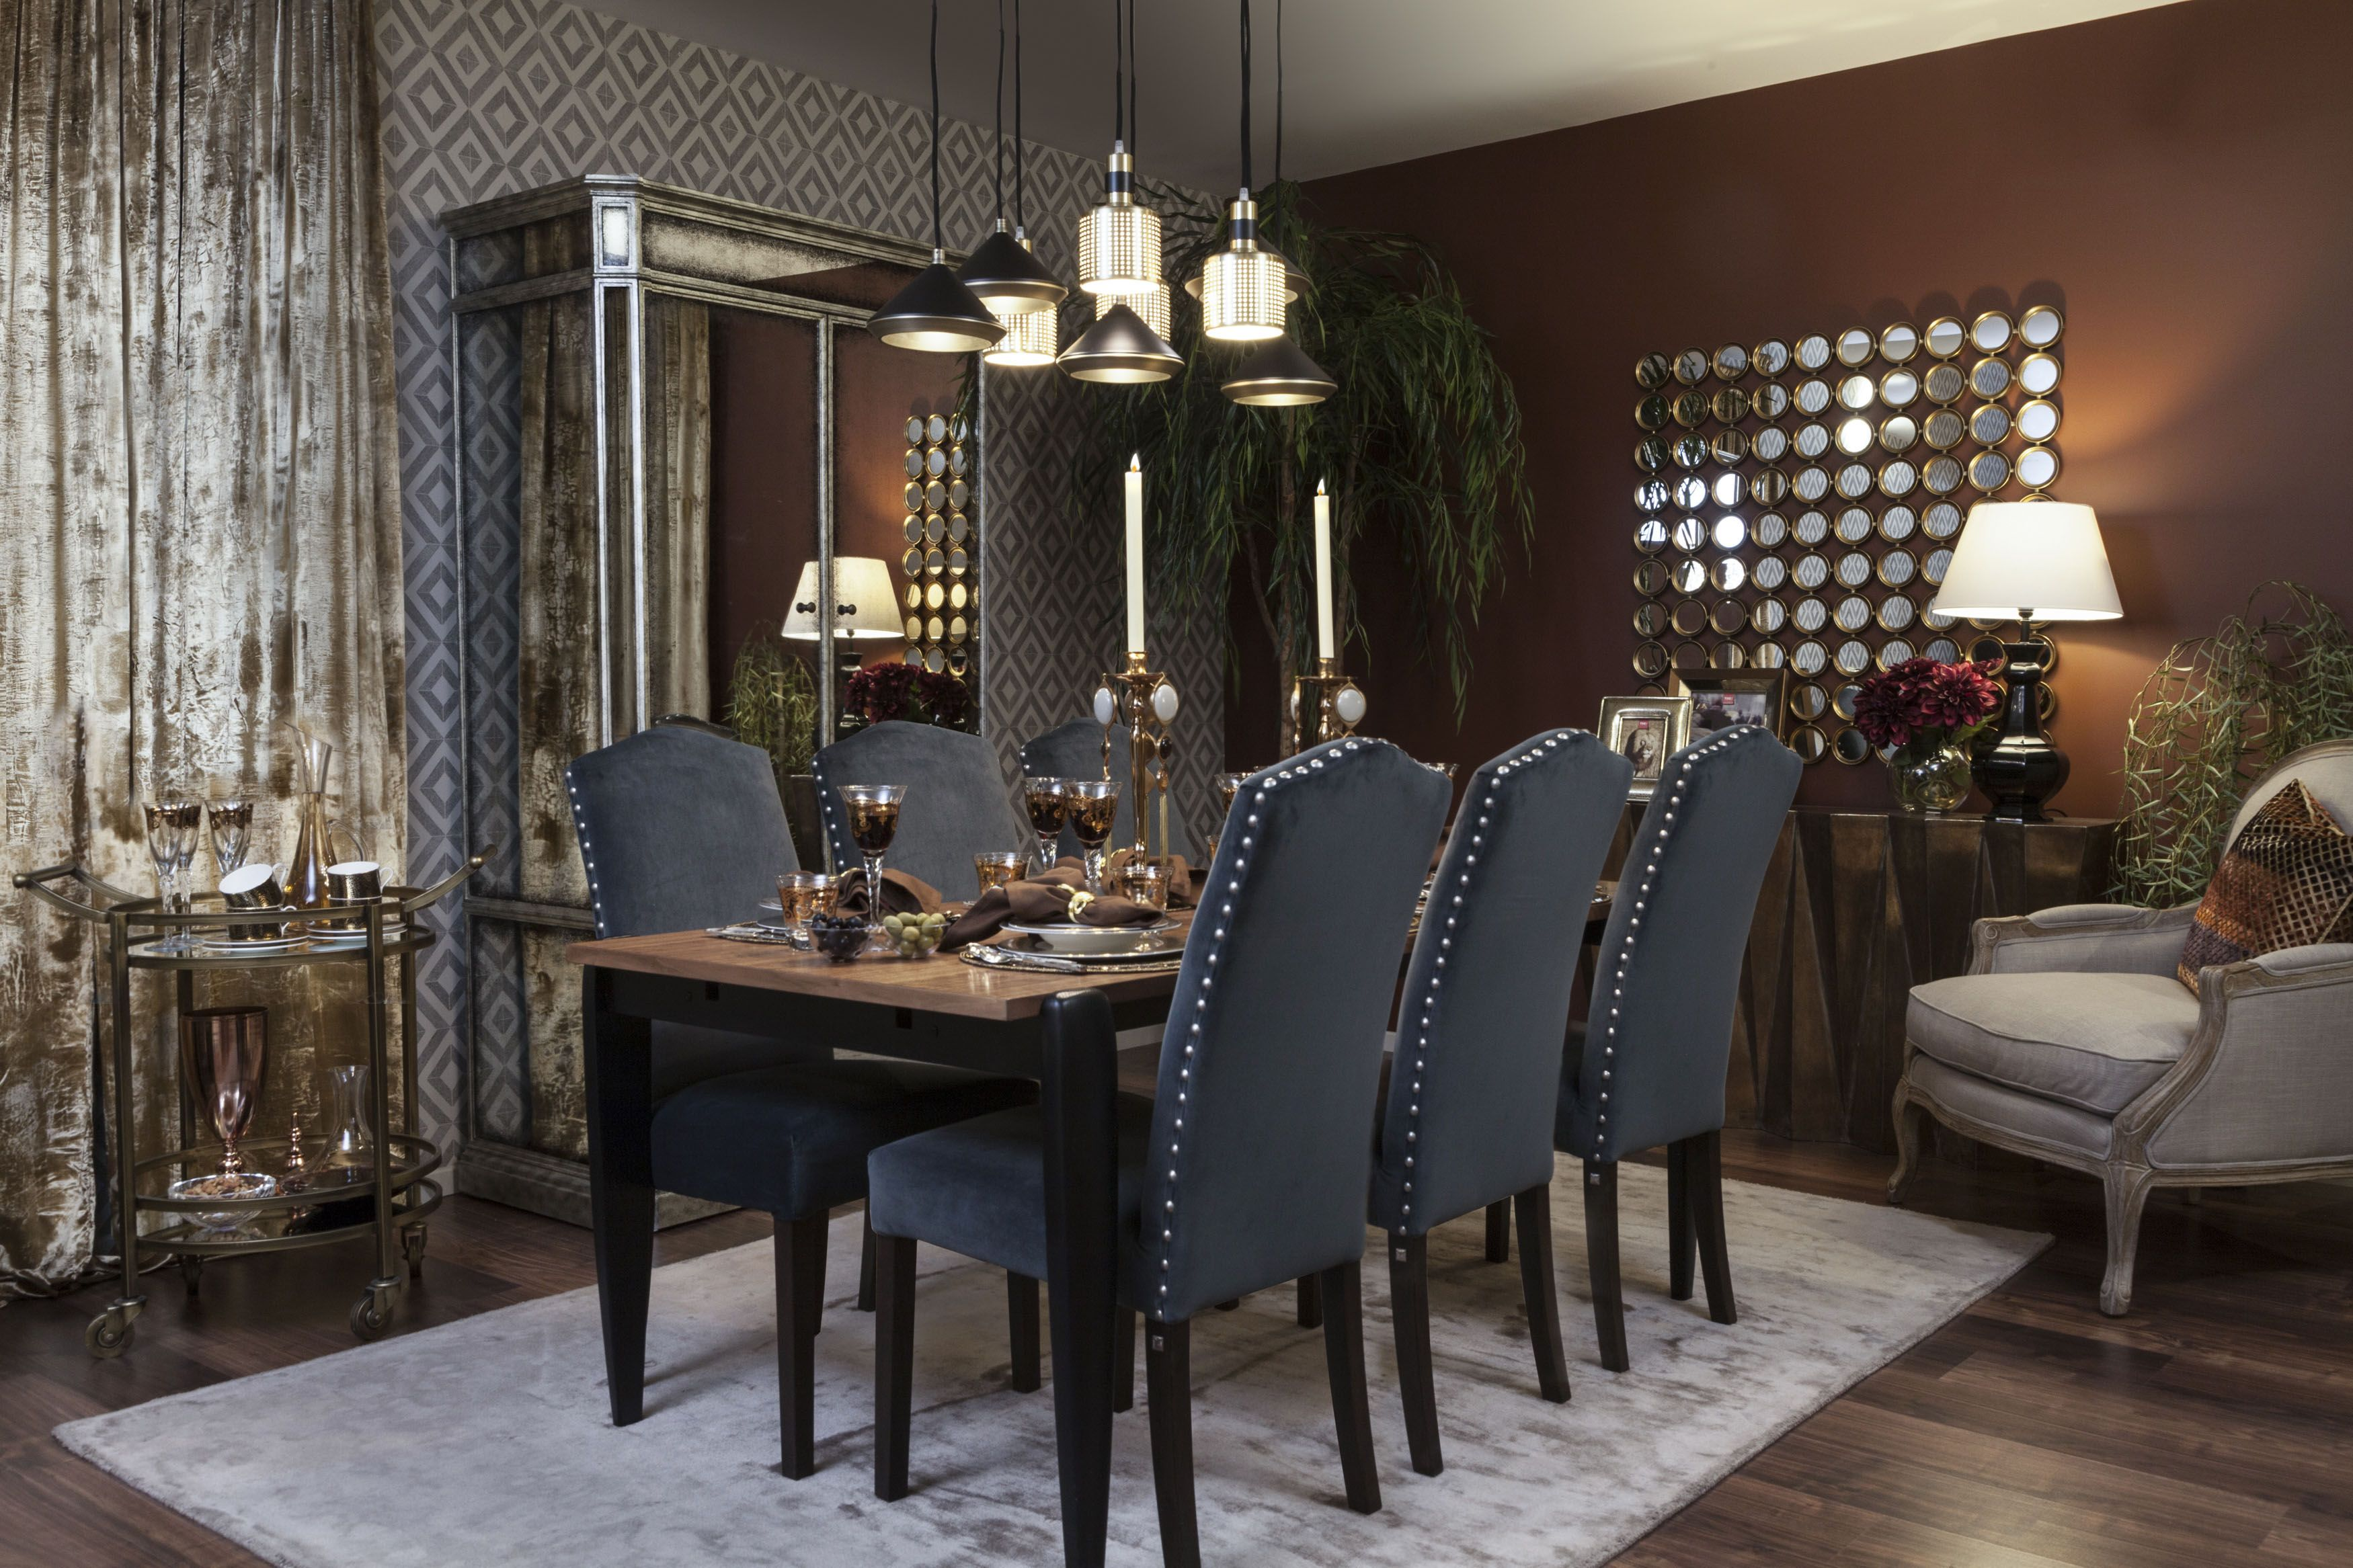 Dining Eclectic A Mix And Match Interior Inspired By Morocco